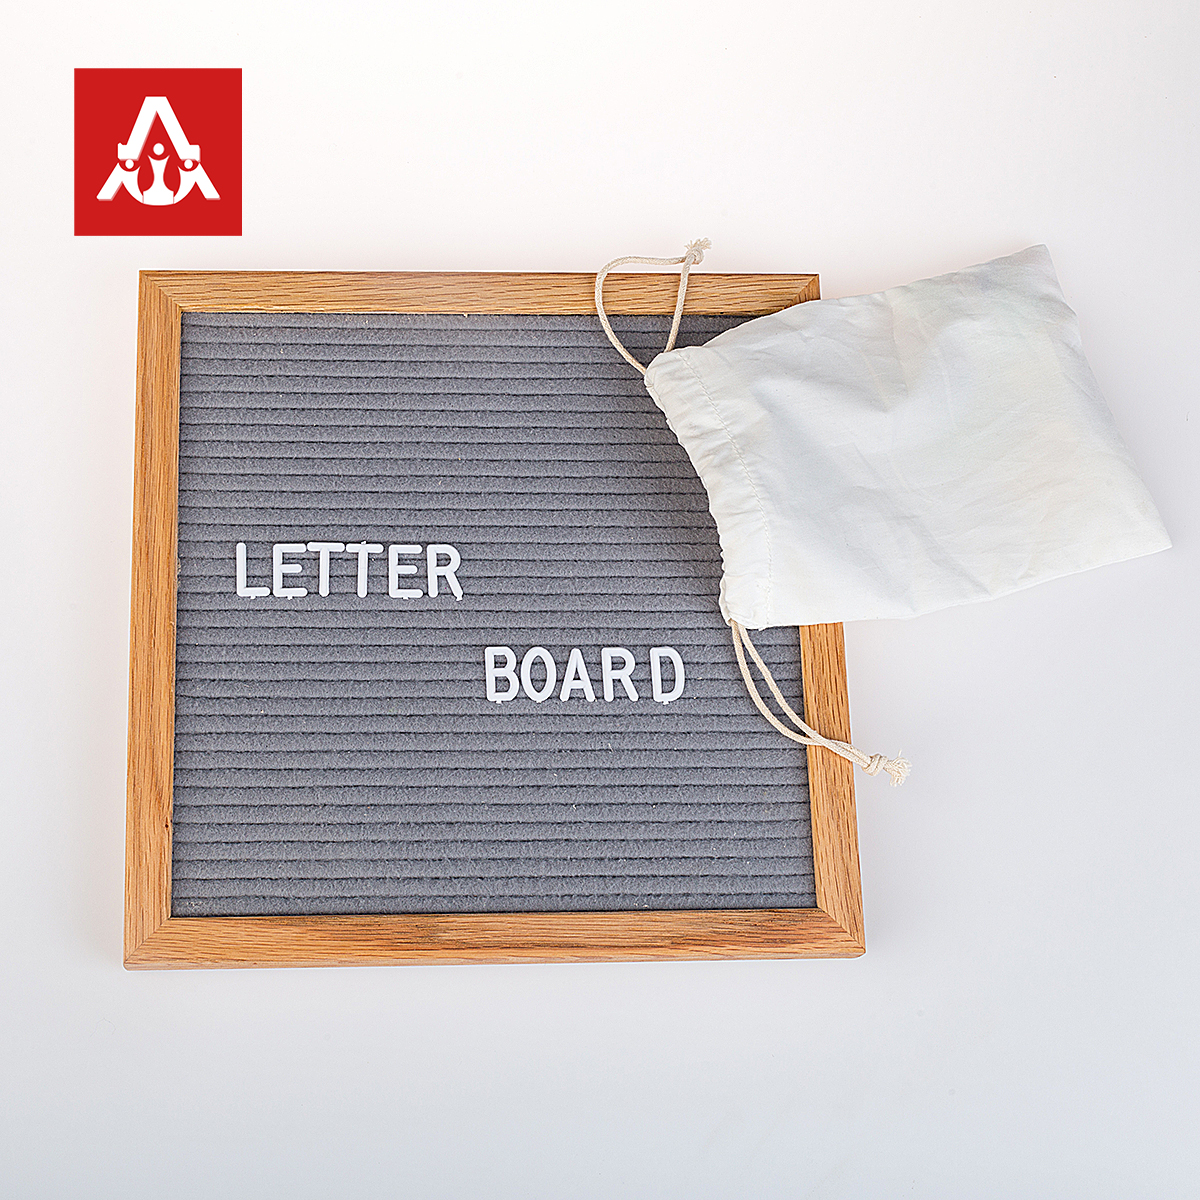 Hot new products custom size 10x10 inch <strong>wooden</strong> frame felt letter board with 340 letters